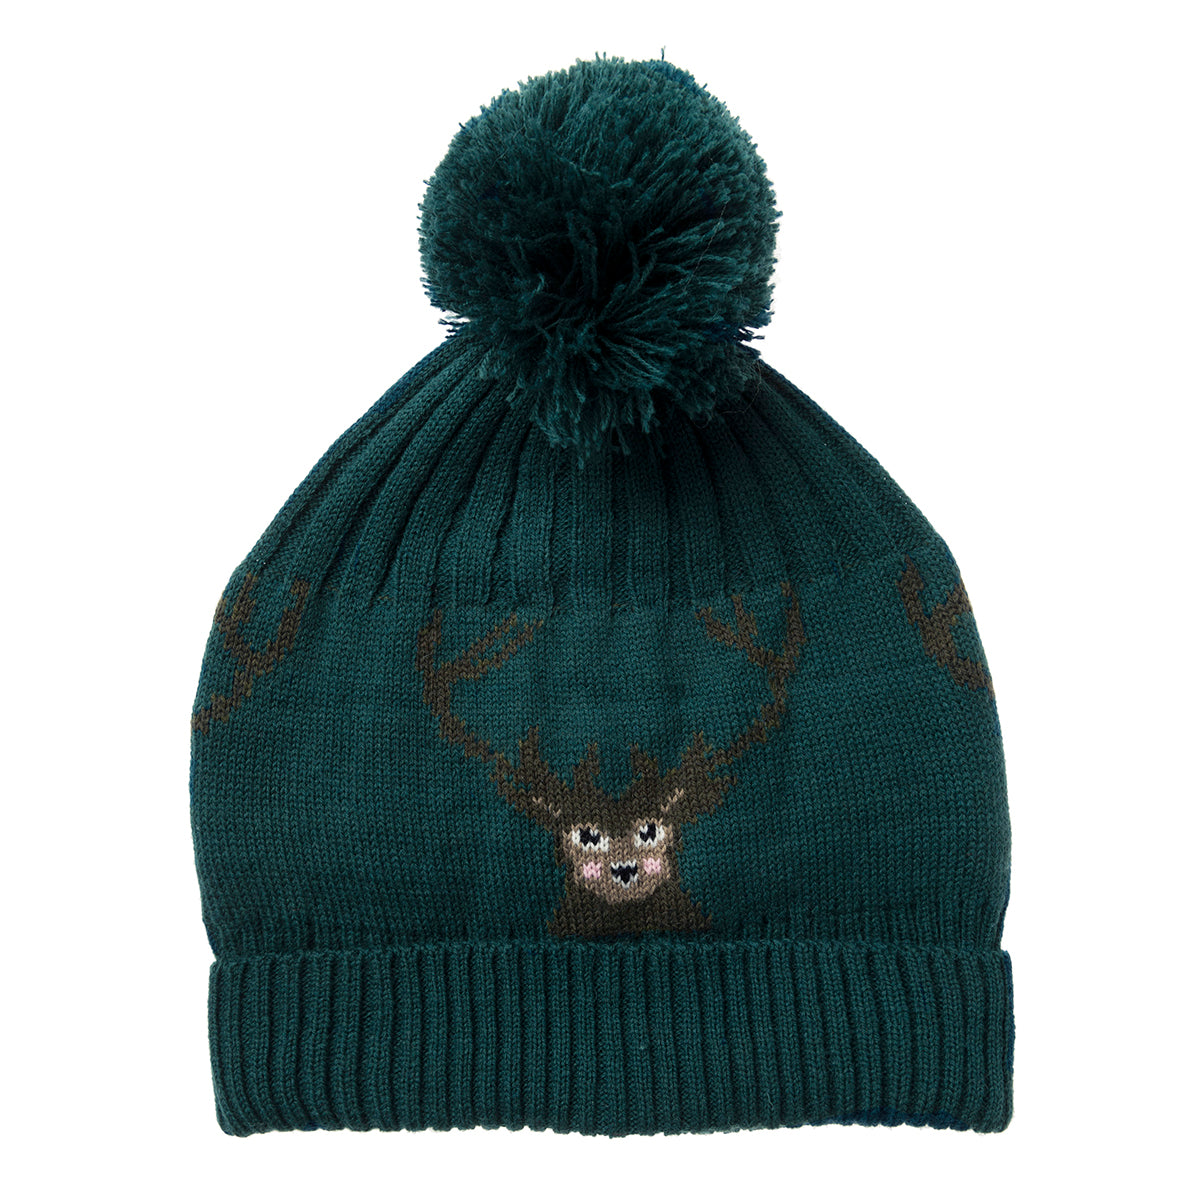 Highland Stag Knitted Hat